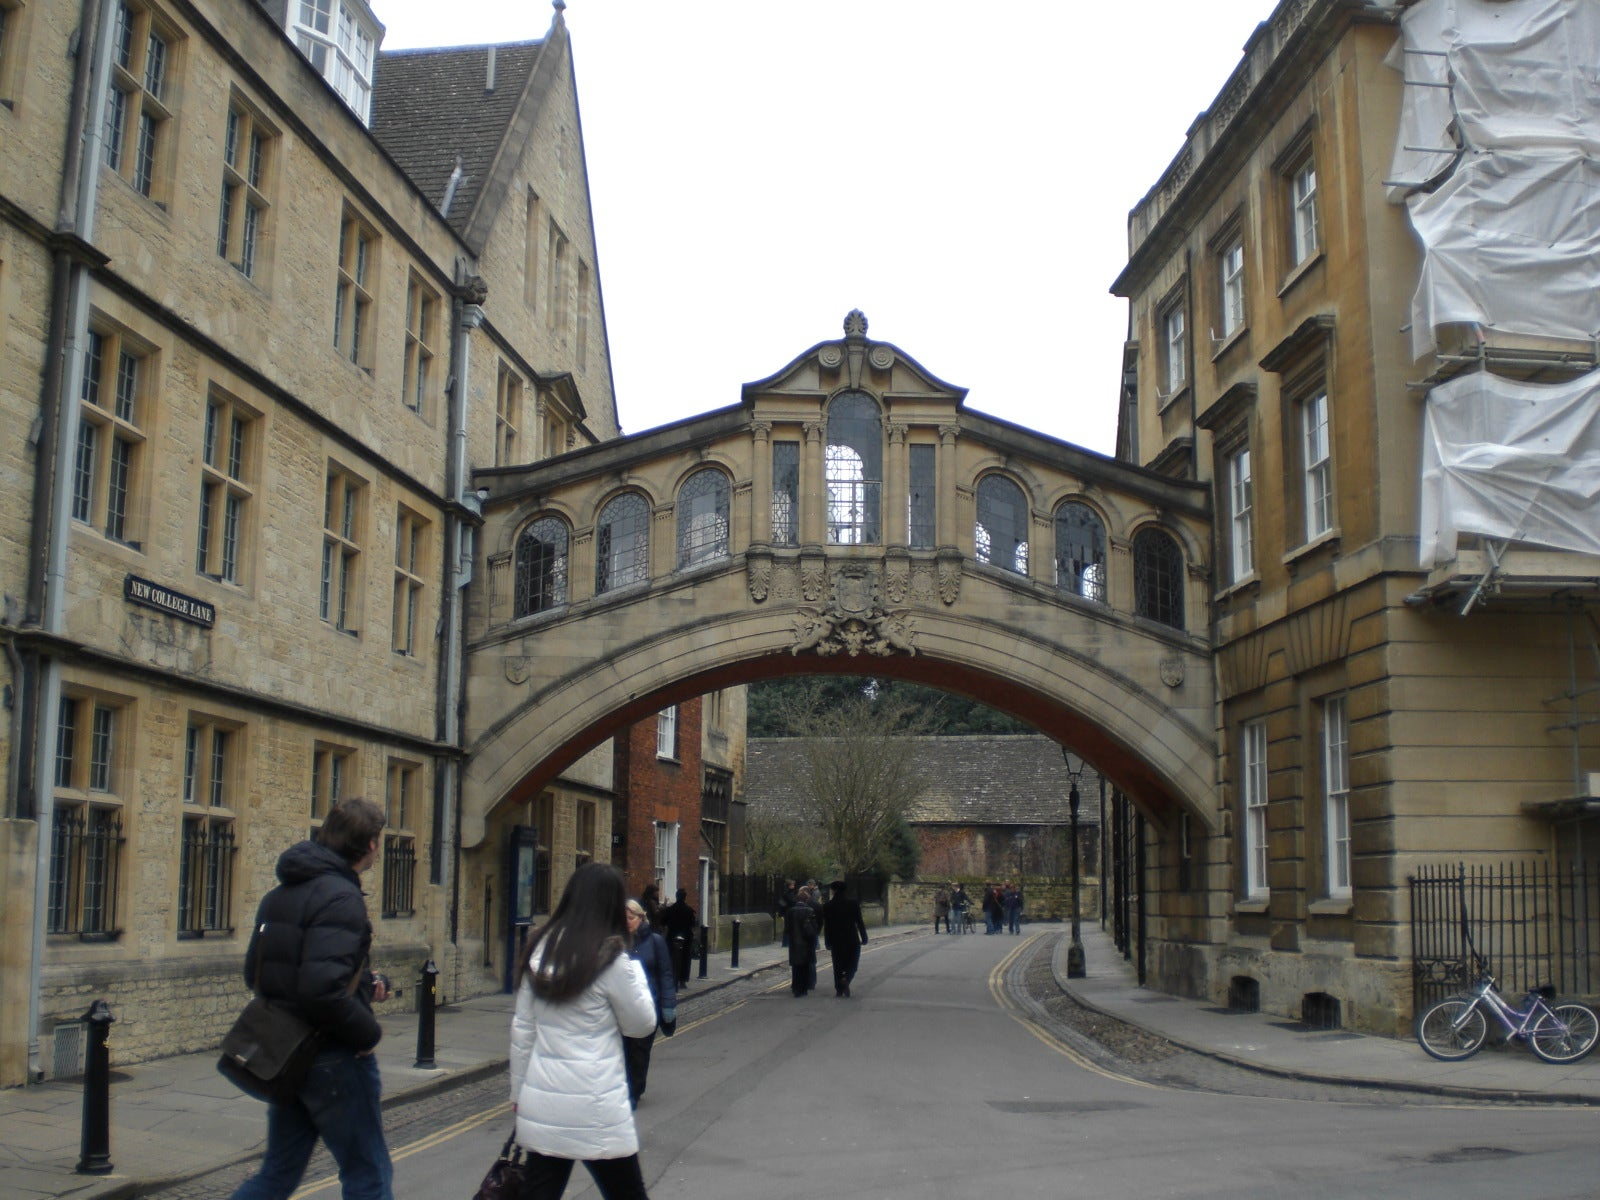 New College Lane